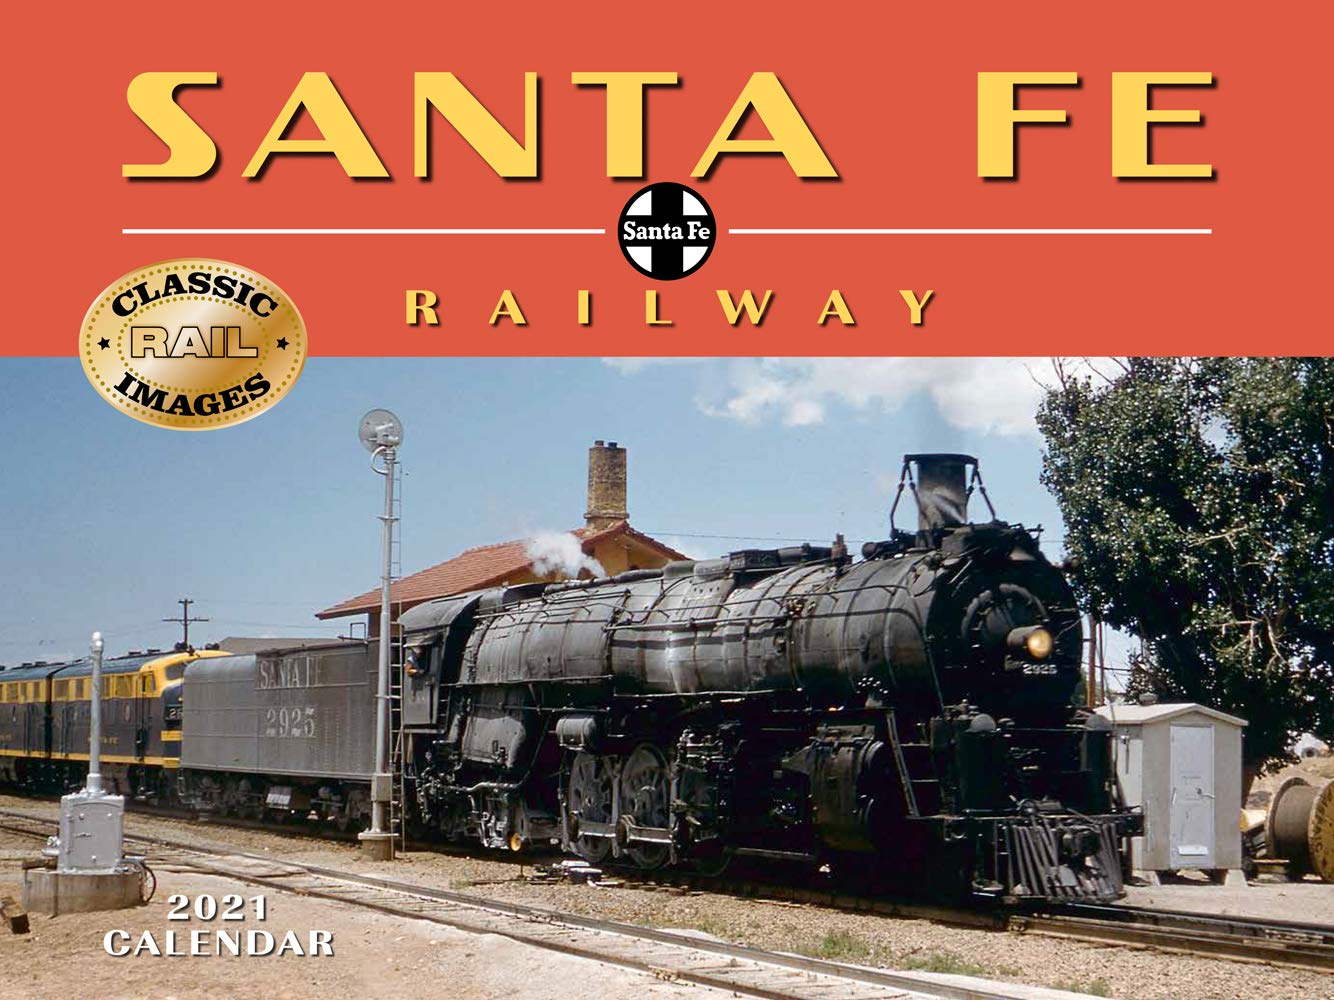 Santa Fe Railway Calendar 2021 Wall: Tide mark: 9781631143137